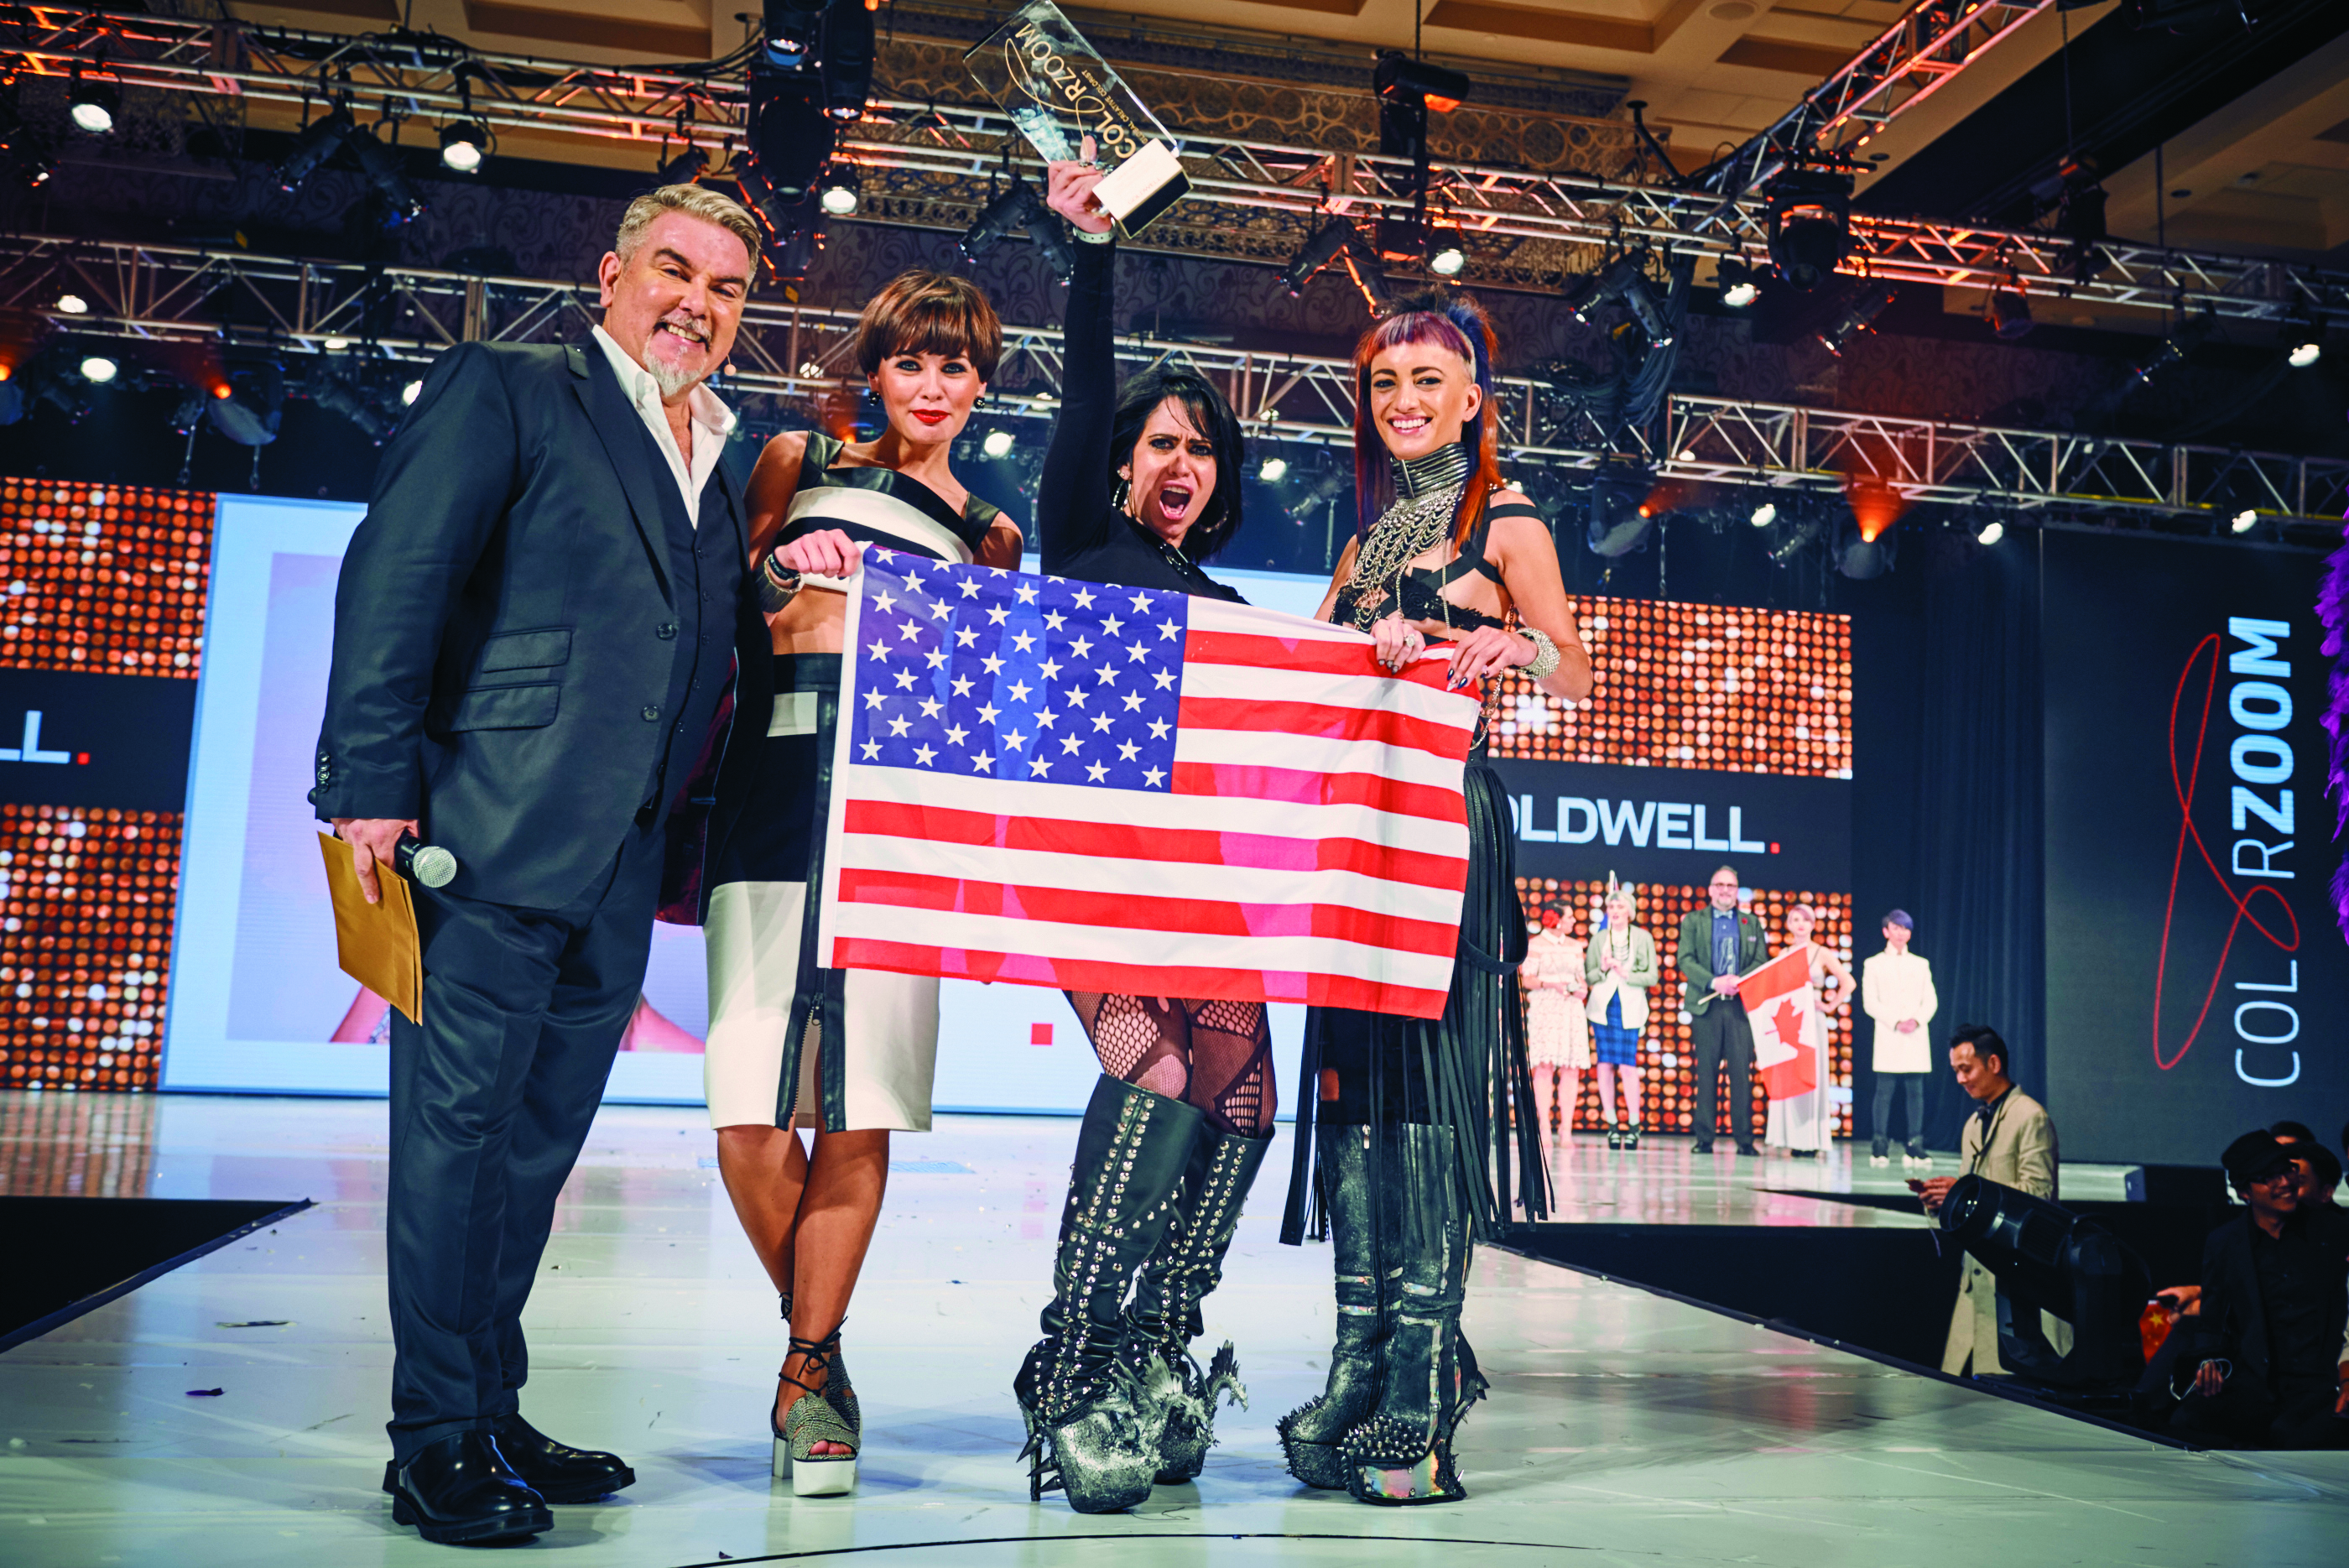 John Moroney, global VP of education, with an exuberant Harley Lobasso hoisting their trophy.